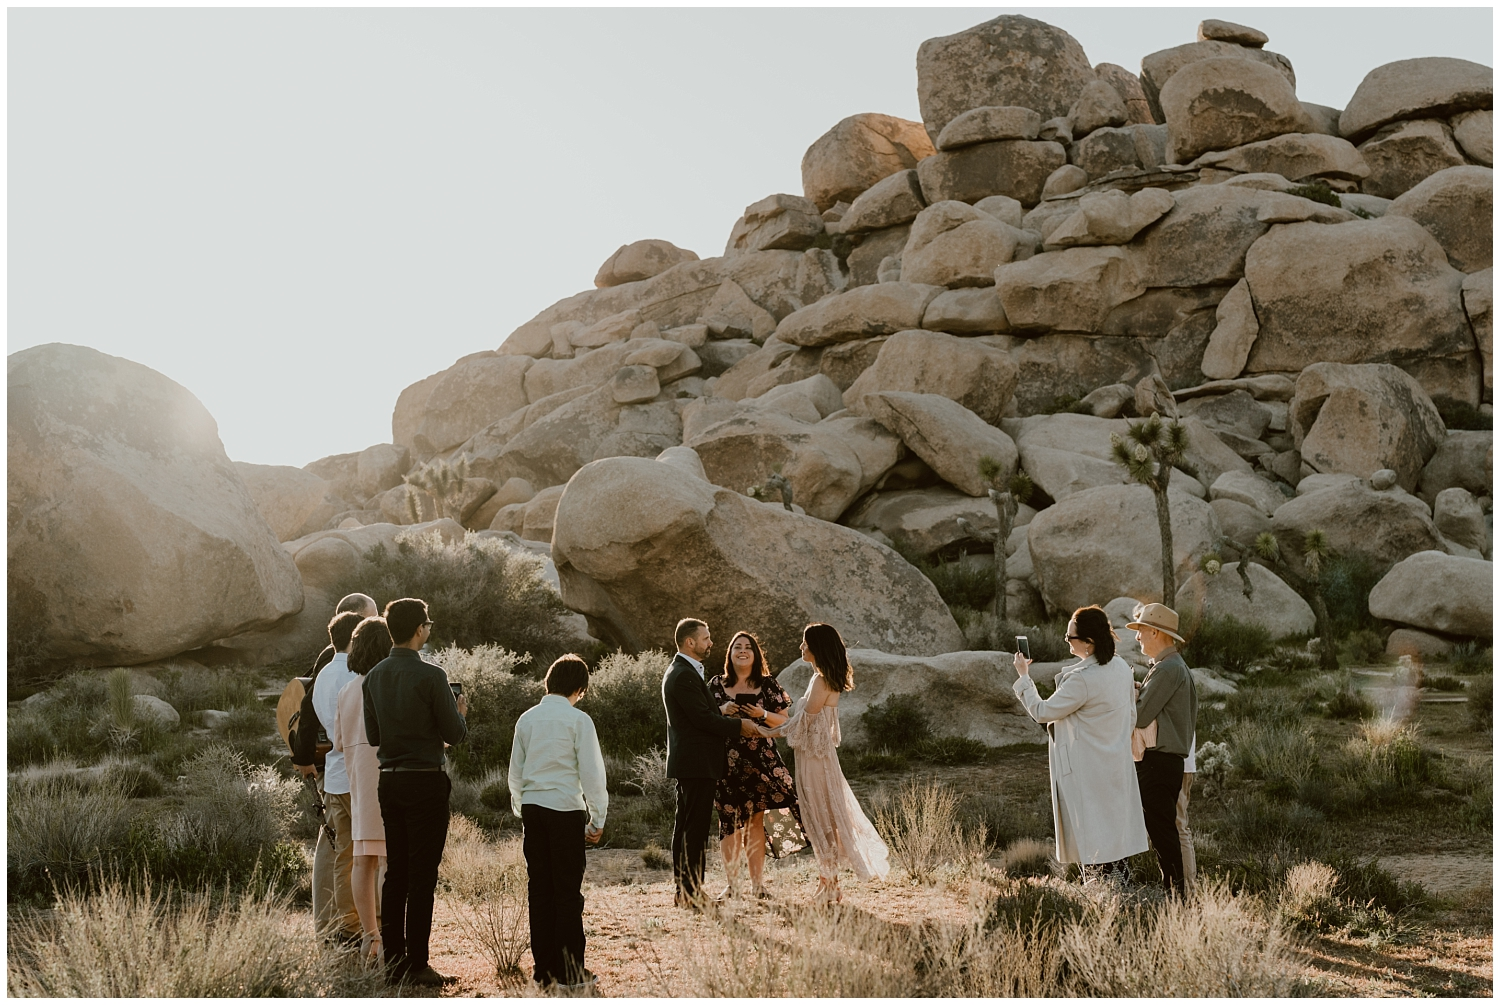 Cap-Rock-Joshua-Tree-Elopement-0036.jpg